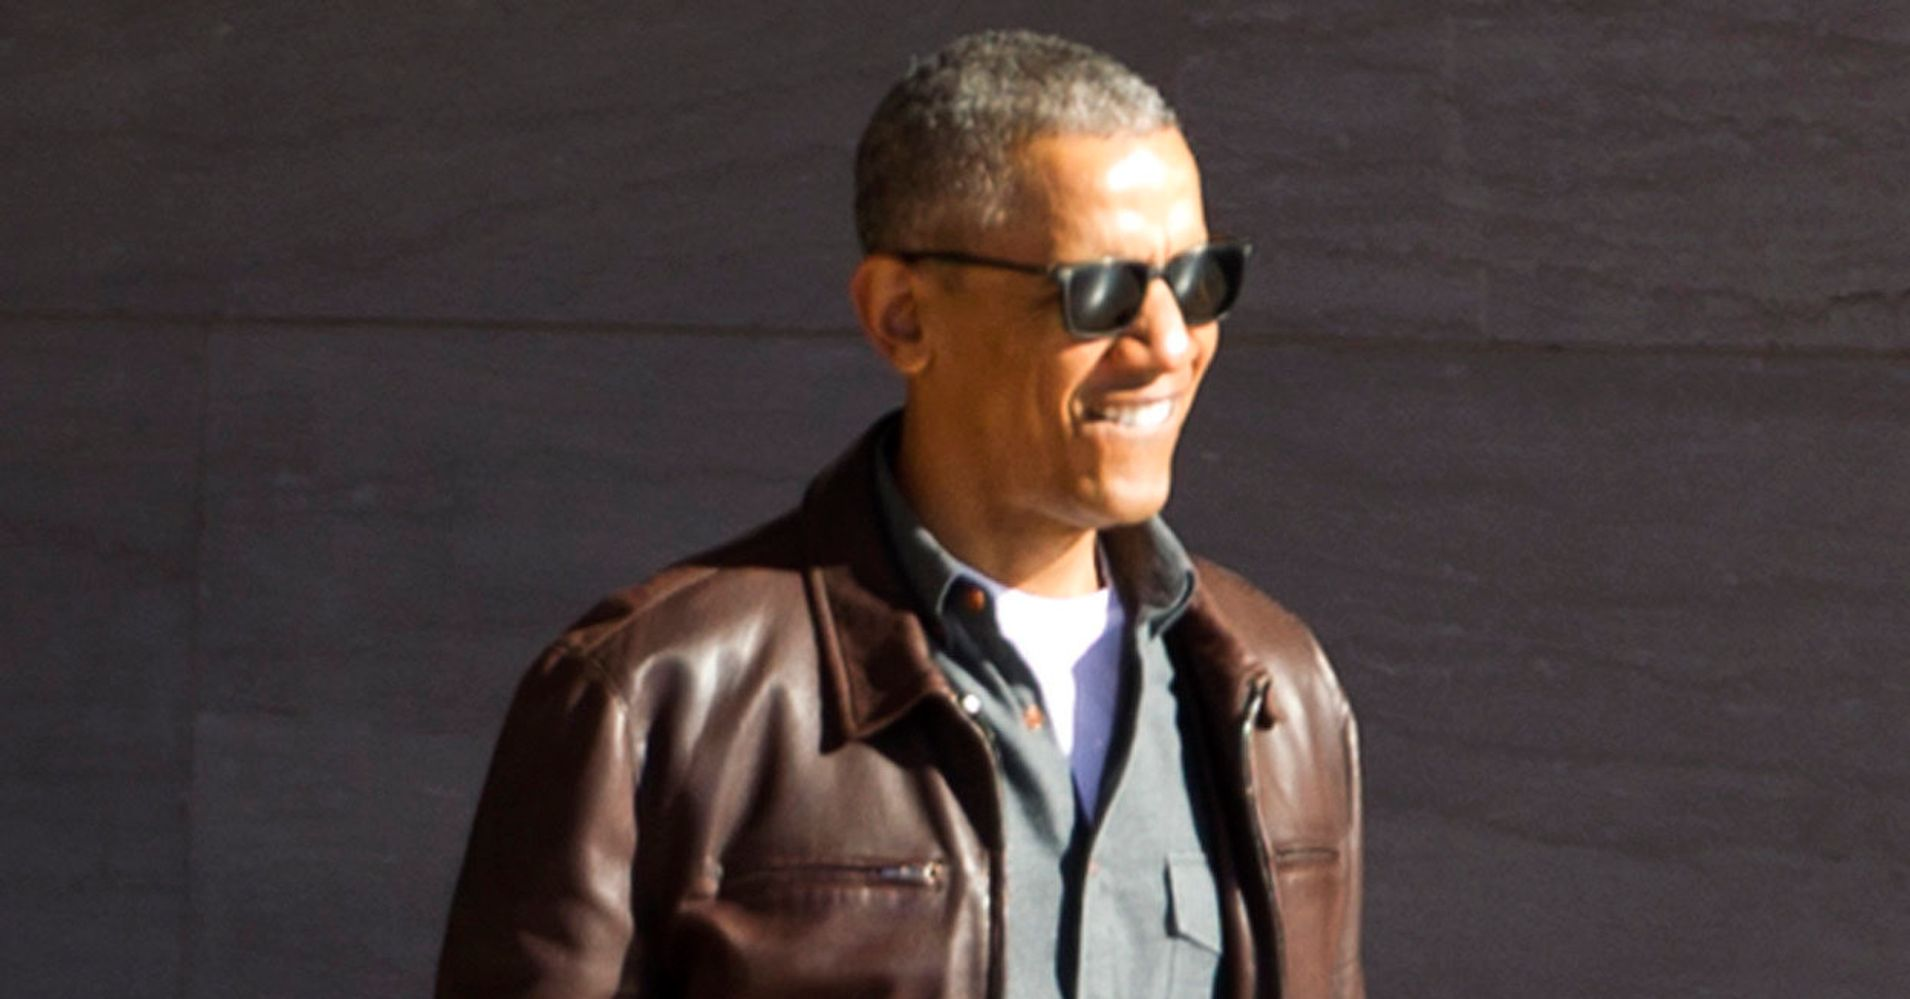 ffa1c897baf033 Barack Obama Doesn't Look Too Worried About Life In This Leather Jacket |  HuffPost Life